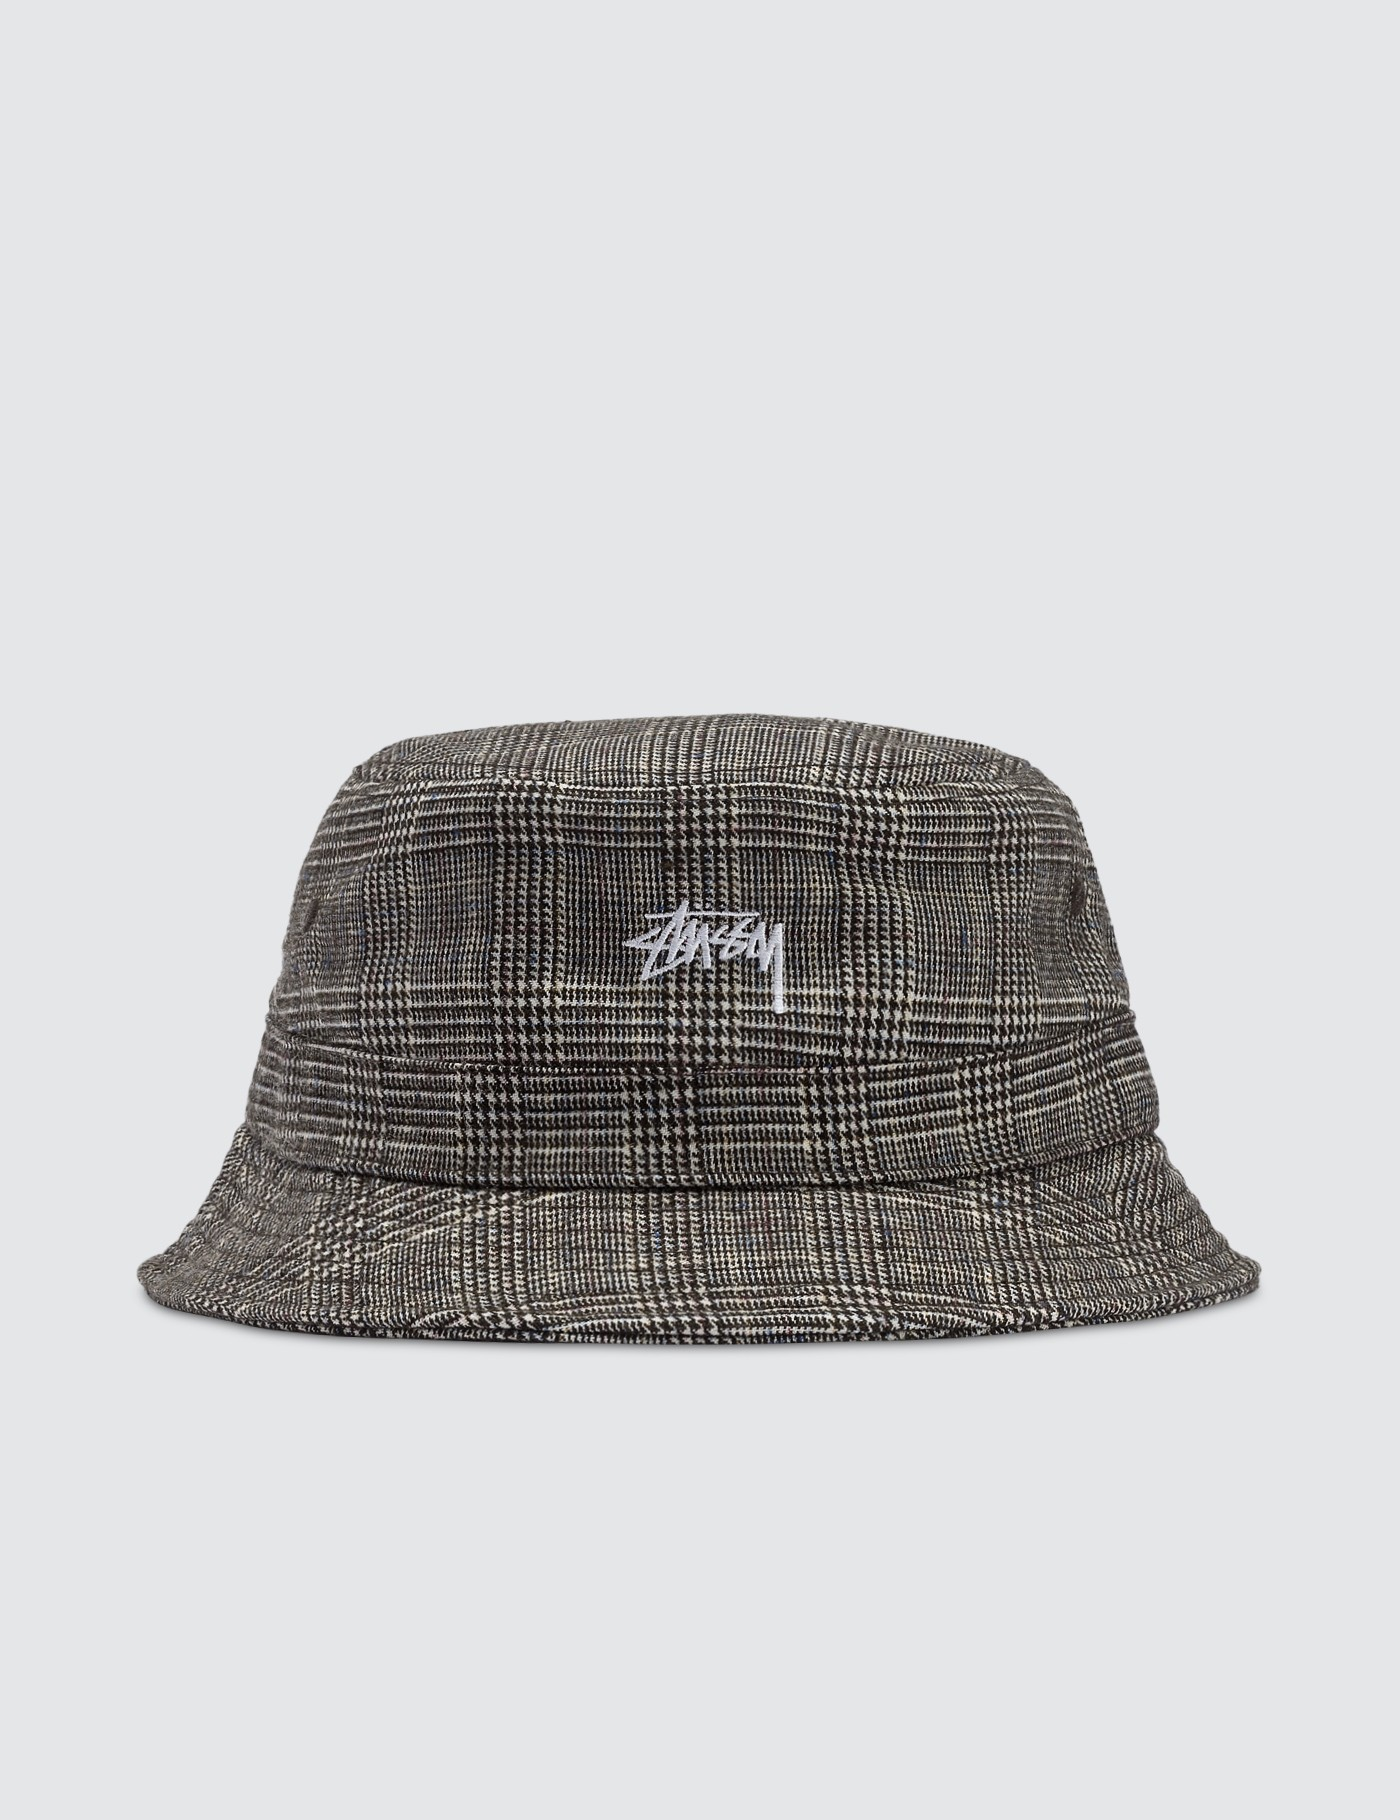 41505f4fe3a Buy Original Stussy Glen Plaid Bucket Hat at Indonesia